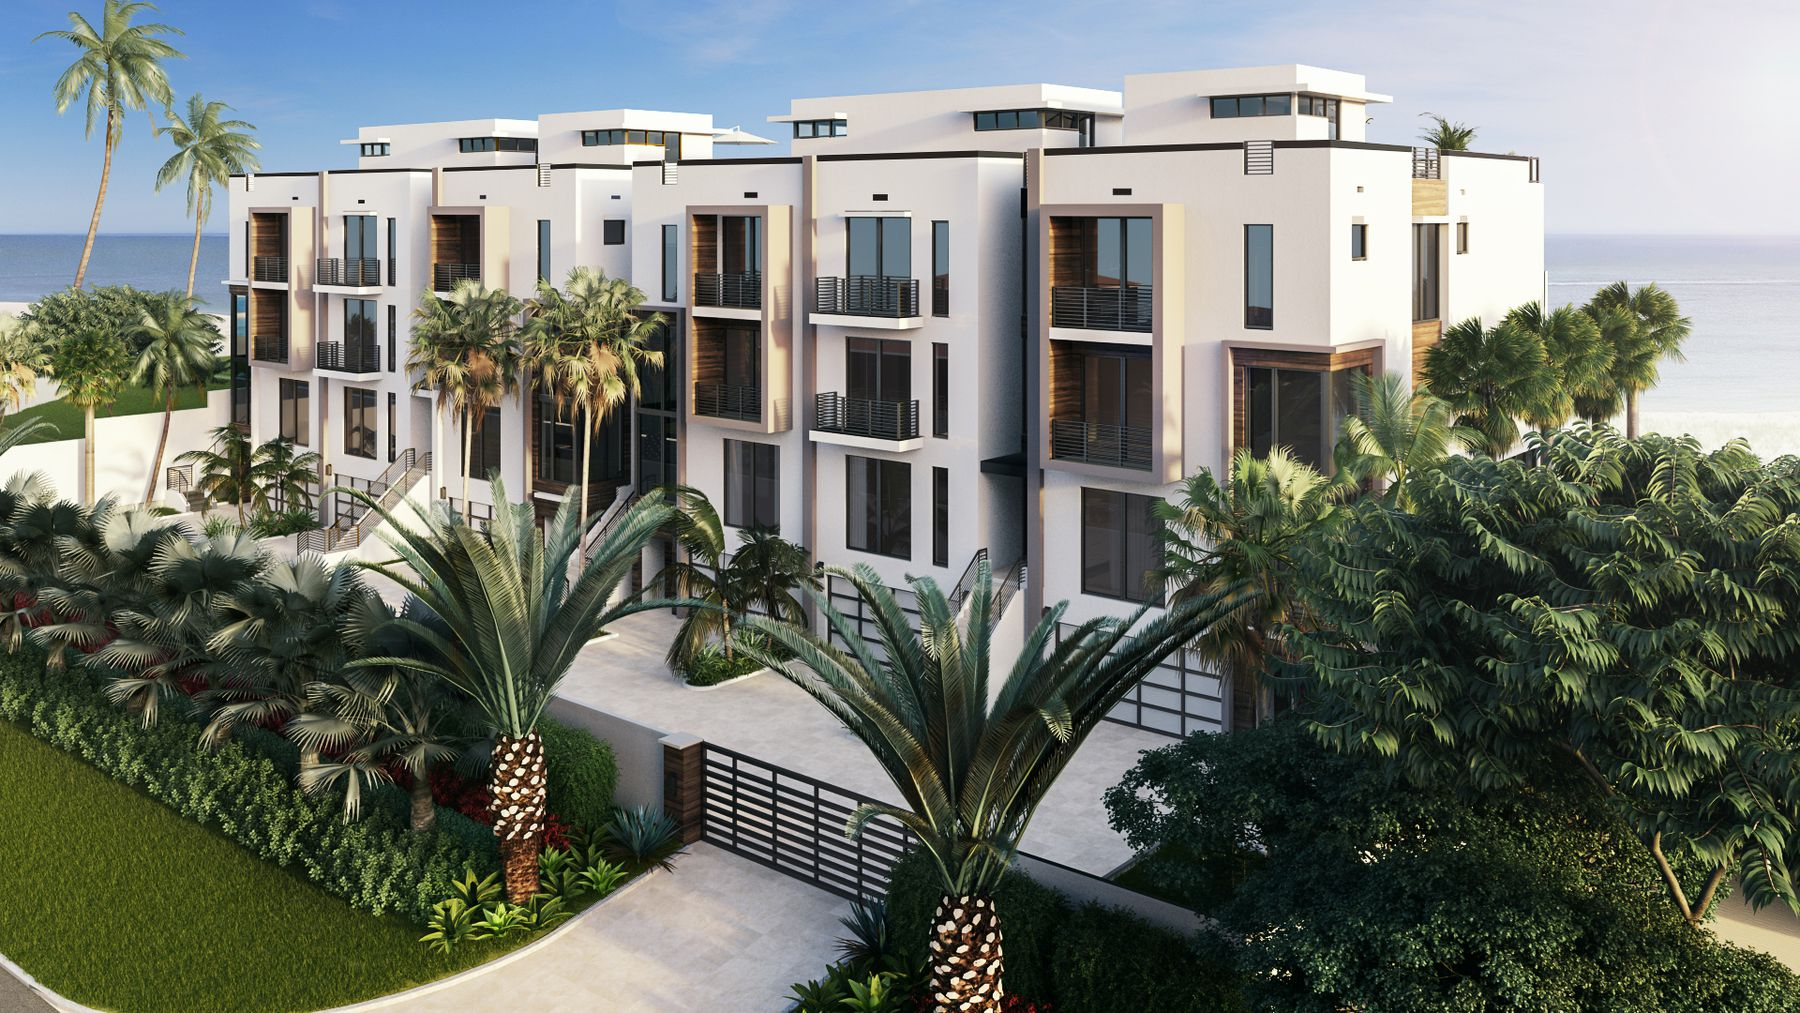 Check Out 3621 South Ocean, The New Beachfront Townhomes Coming To Highland Beach